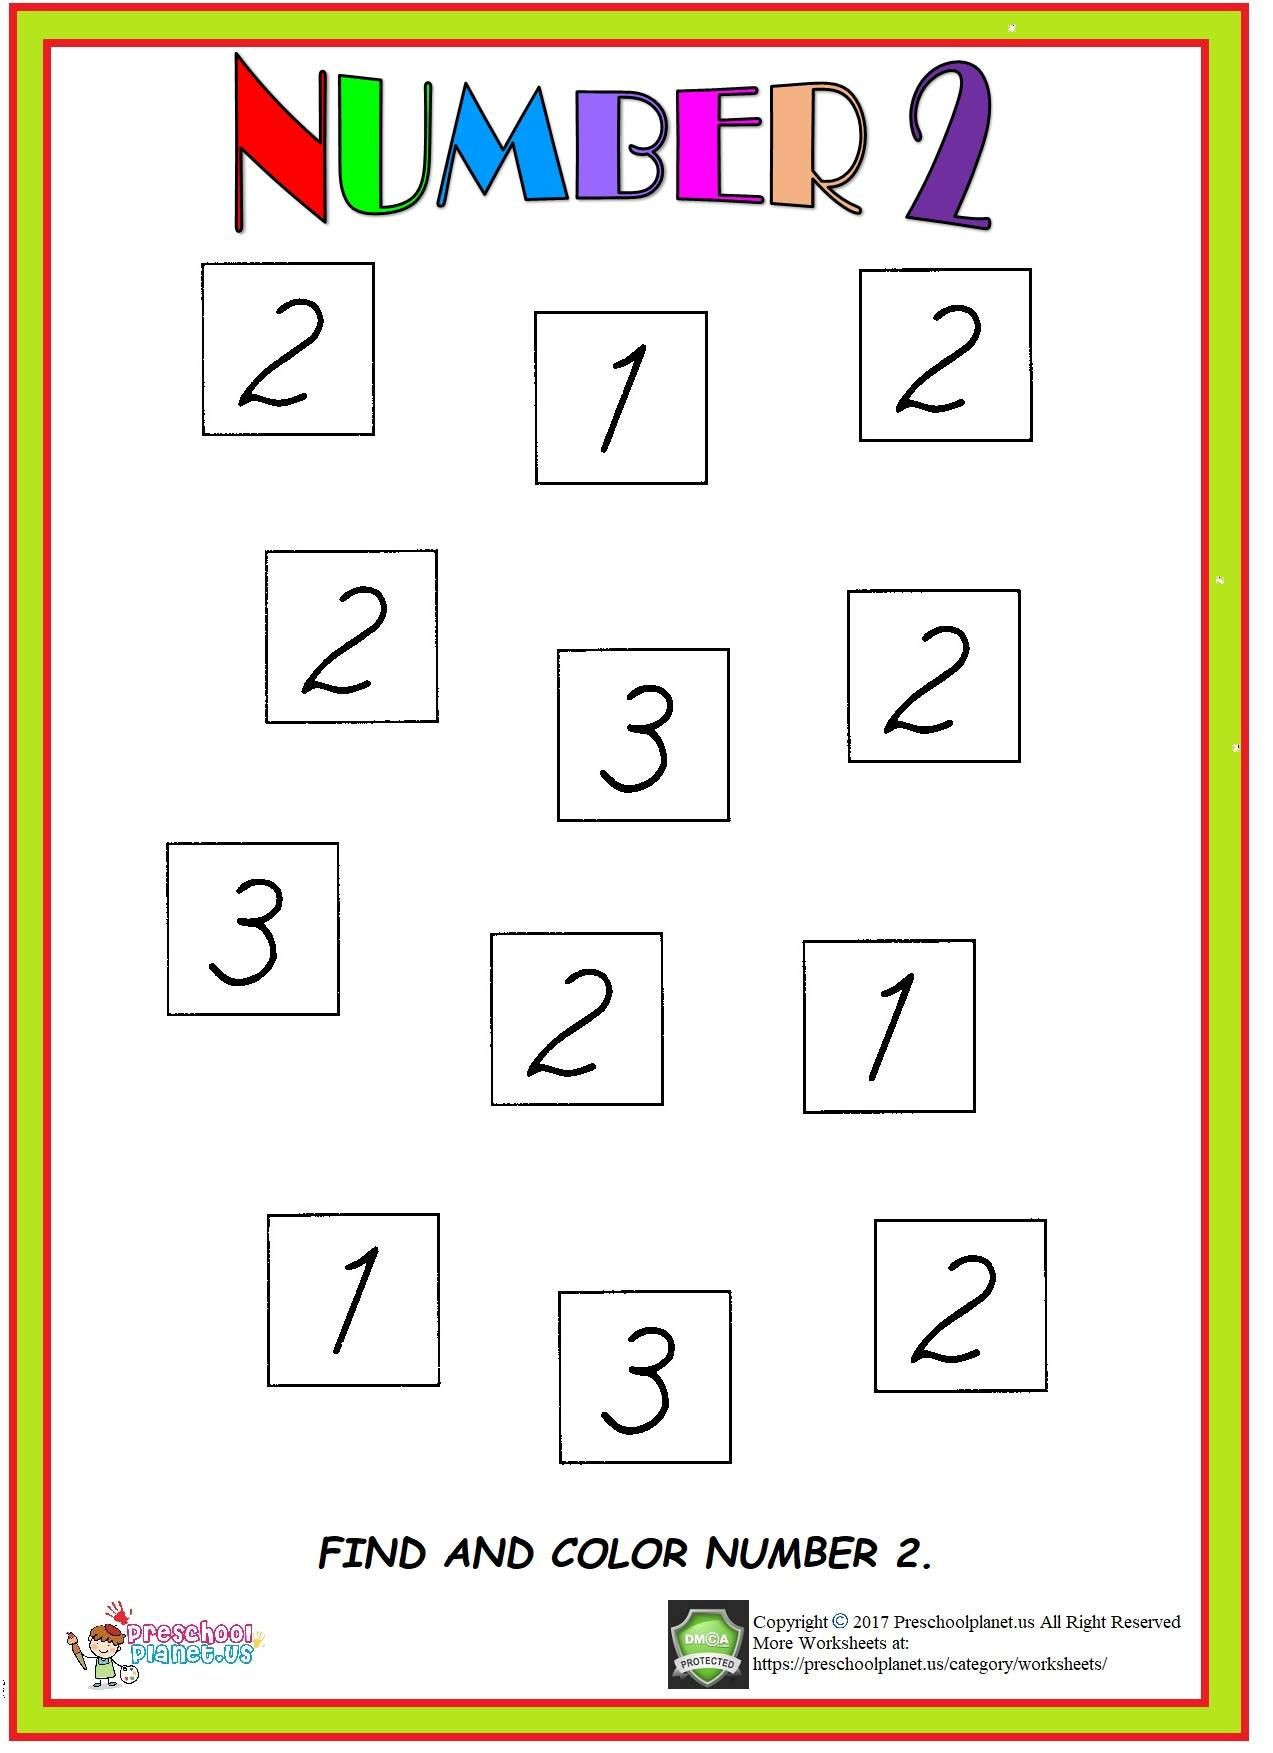 Number 2 Worksheets for Preschool Number 2 Worksheet Here is Number 2 Worksheet for Preschool